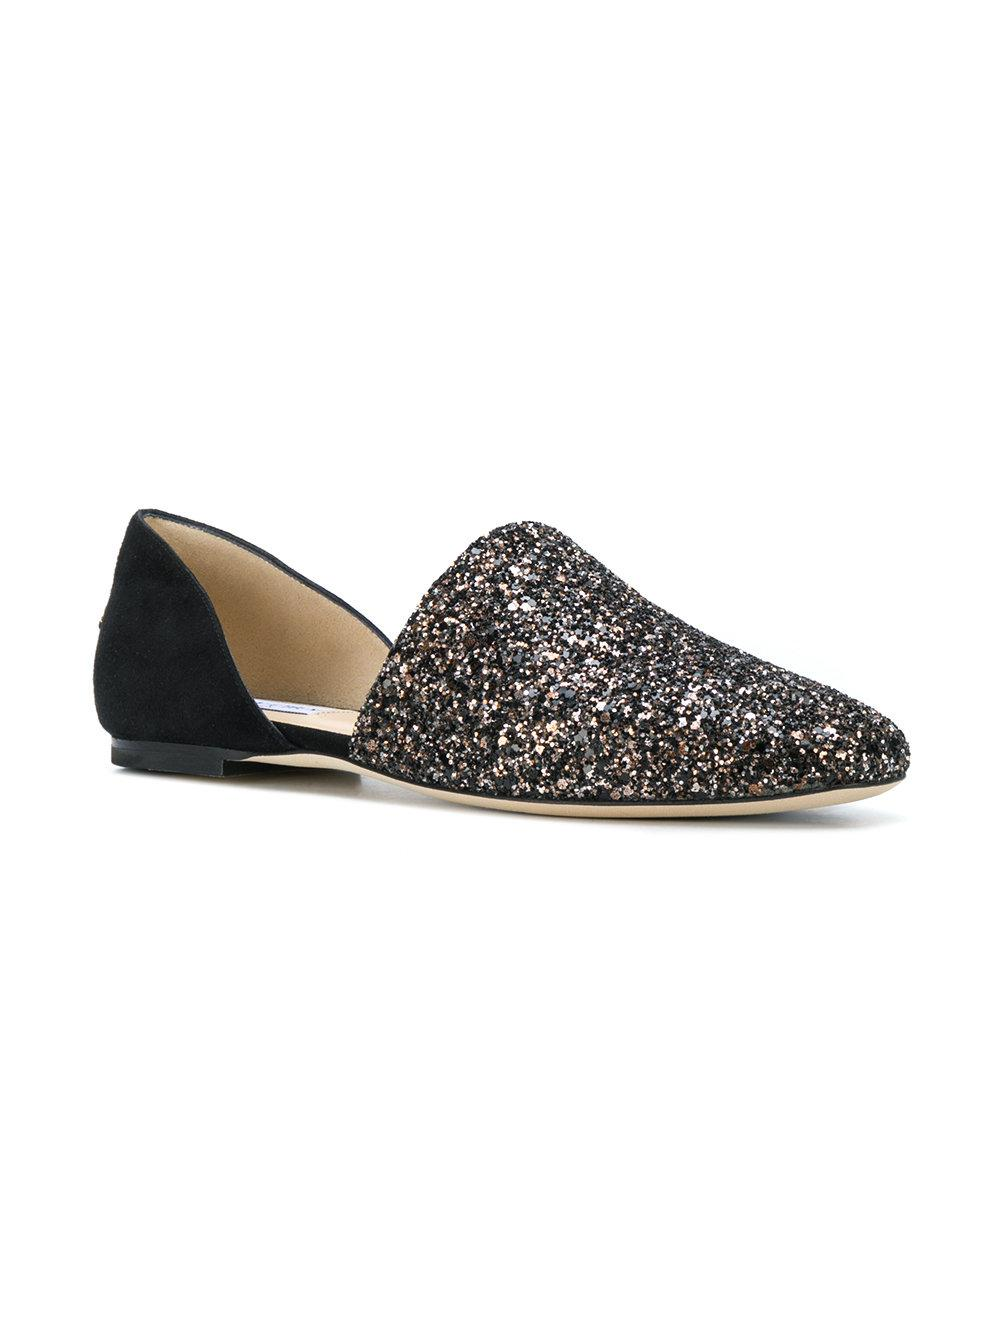 Slipper GLOBE FLAT suede black fabric glitter bronze Jimmy Choo London f67zc